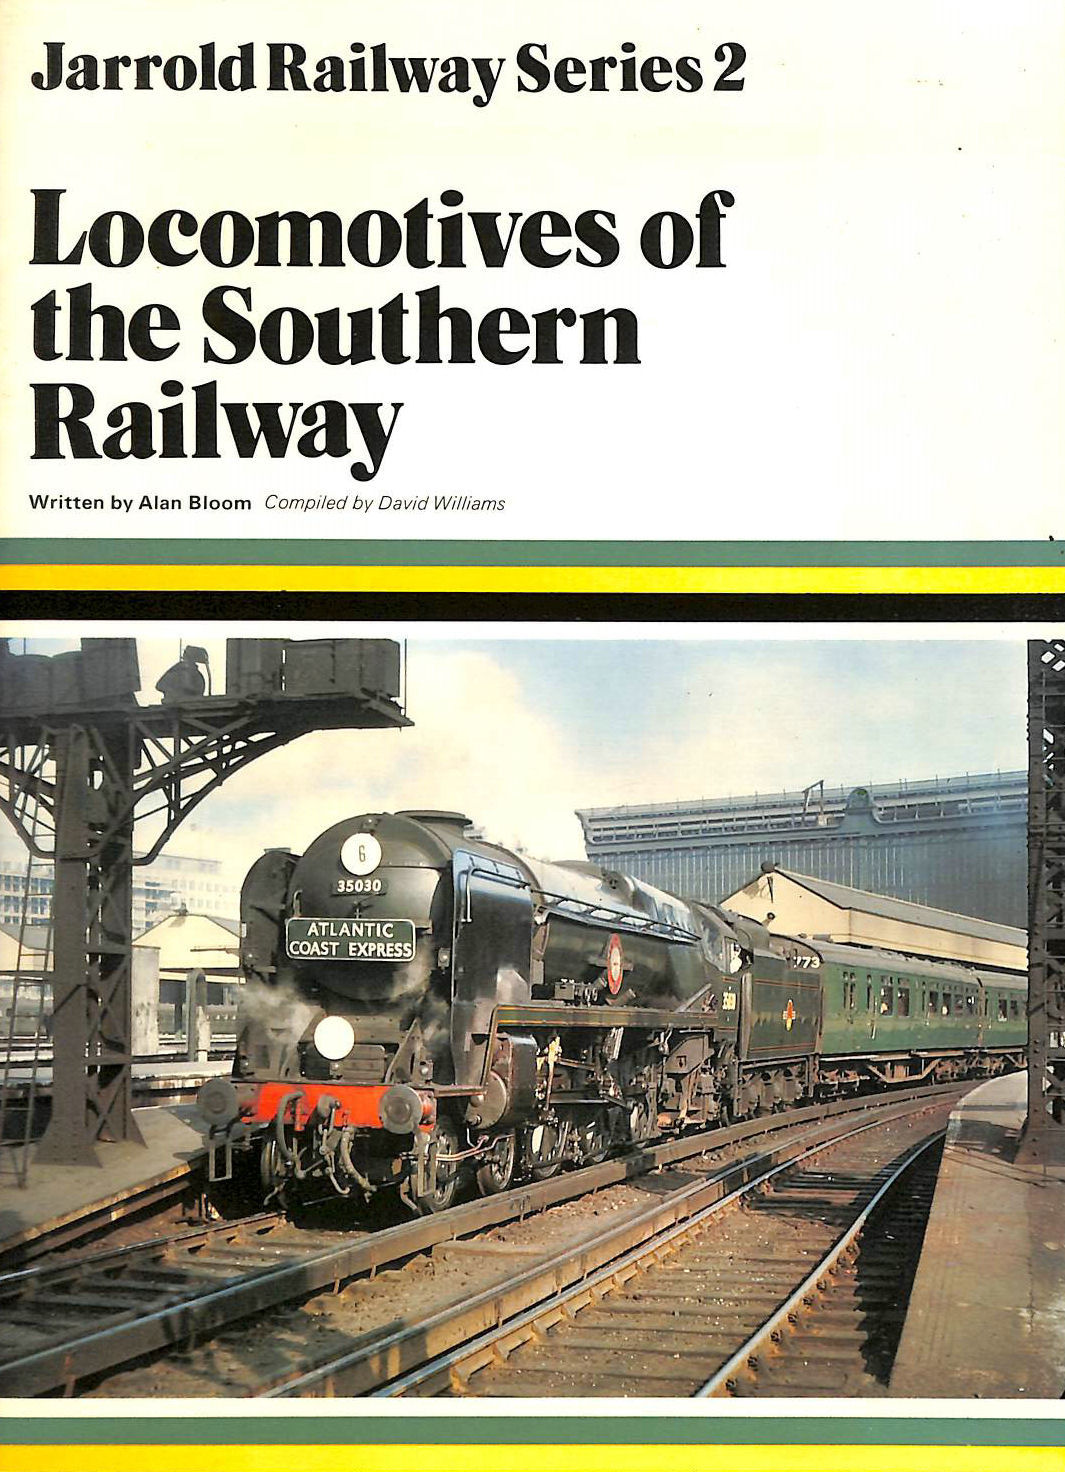 Image for Locomotives of the Southern Railway (Jarrold Railway Series 2)